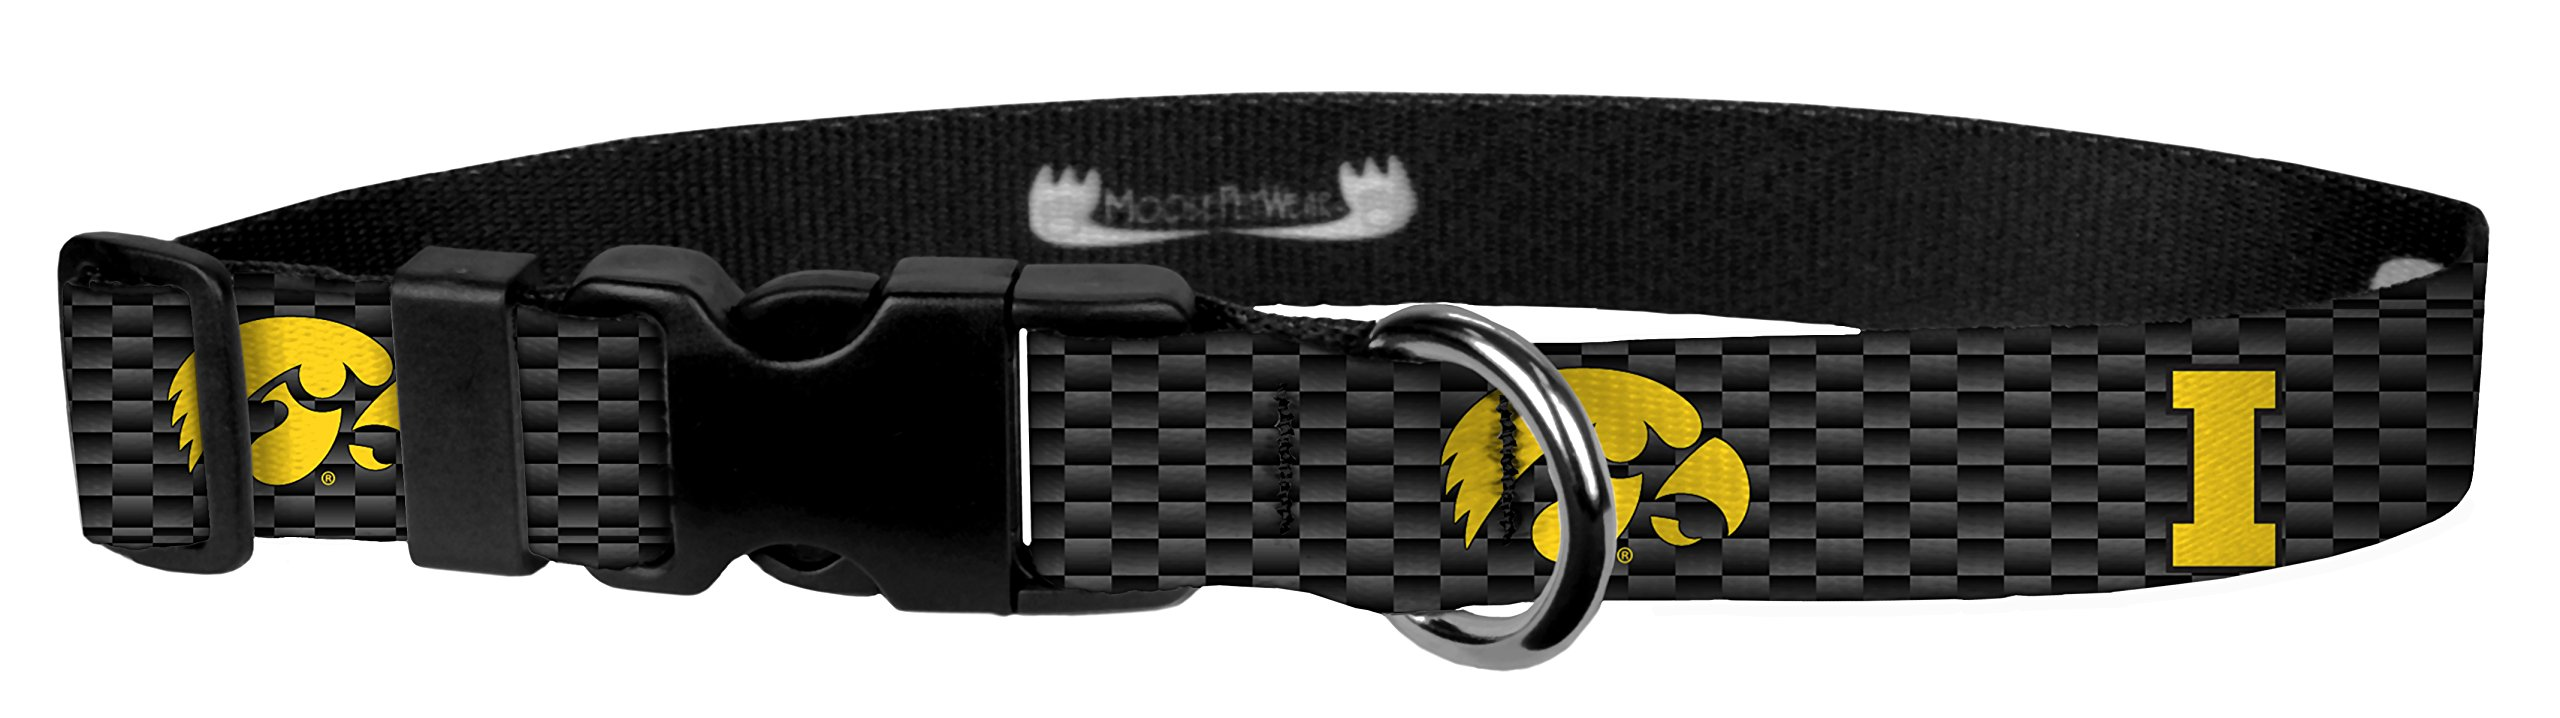 Moose Pet Wear Dog Collar - University of Iowa Adjustable Pet Collars, Made in The USA - 3/4 Inch Wide, Small, Hawk on Carbon Fiber by Moose Pet Wear